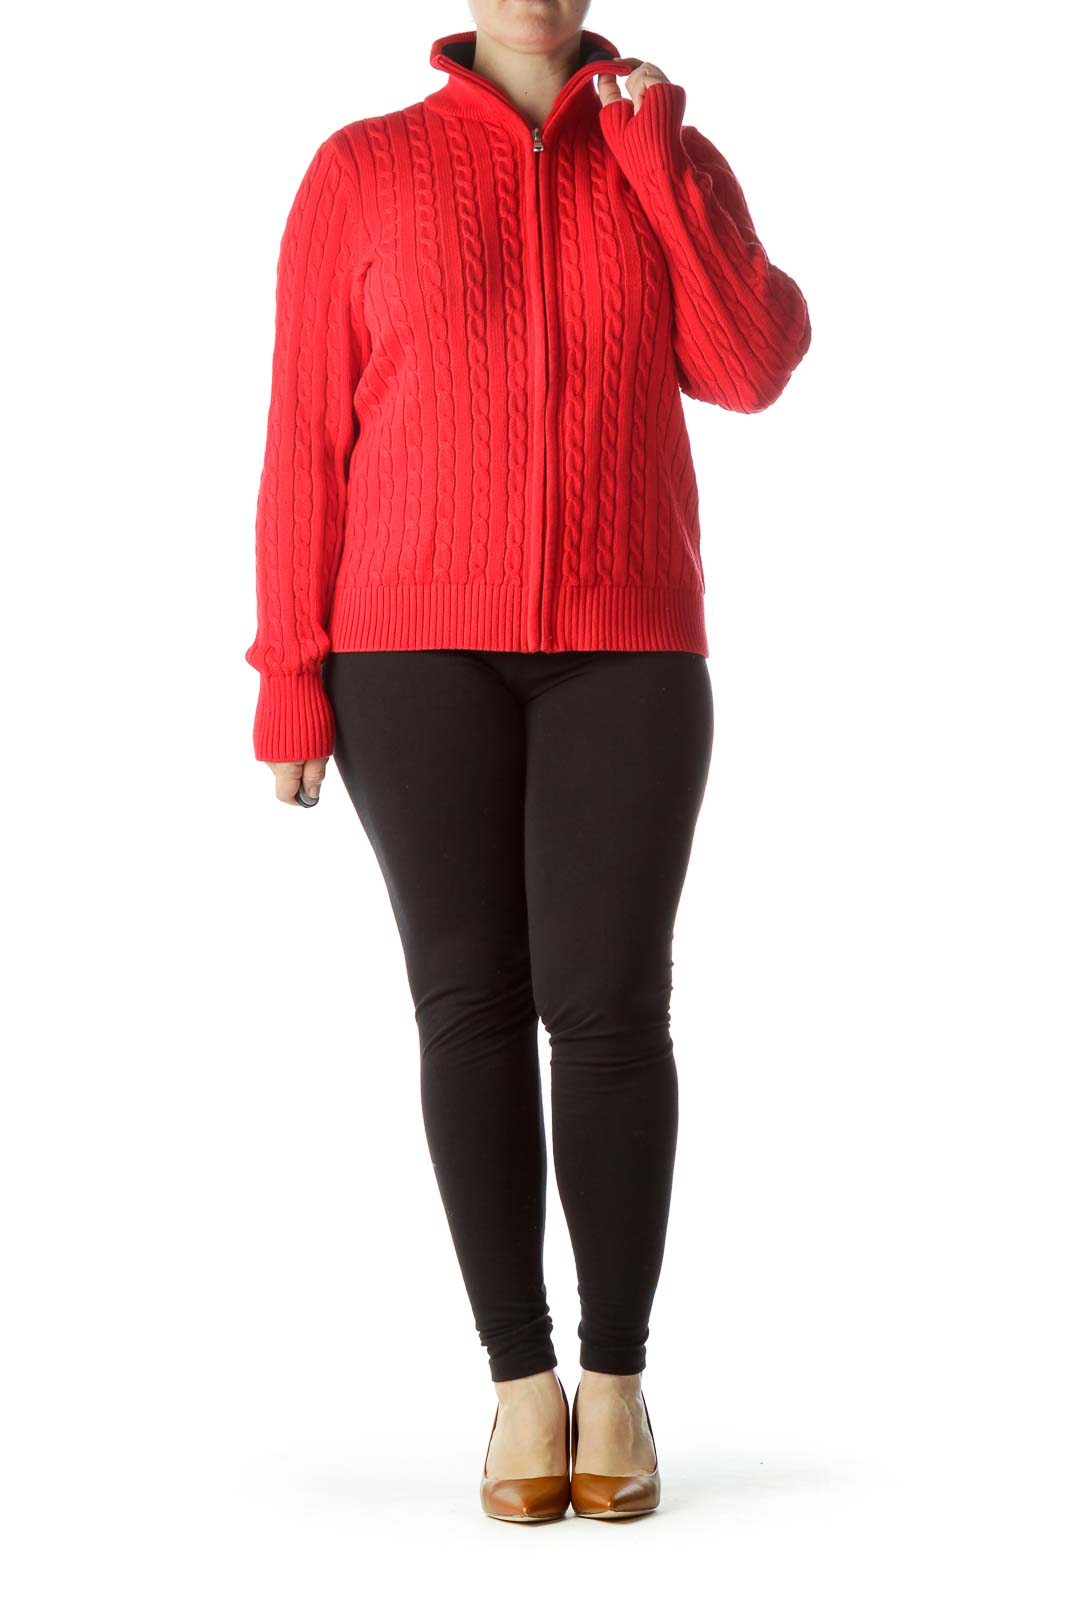 Red Zippered Cable-Knit 100% Cotton Sweater